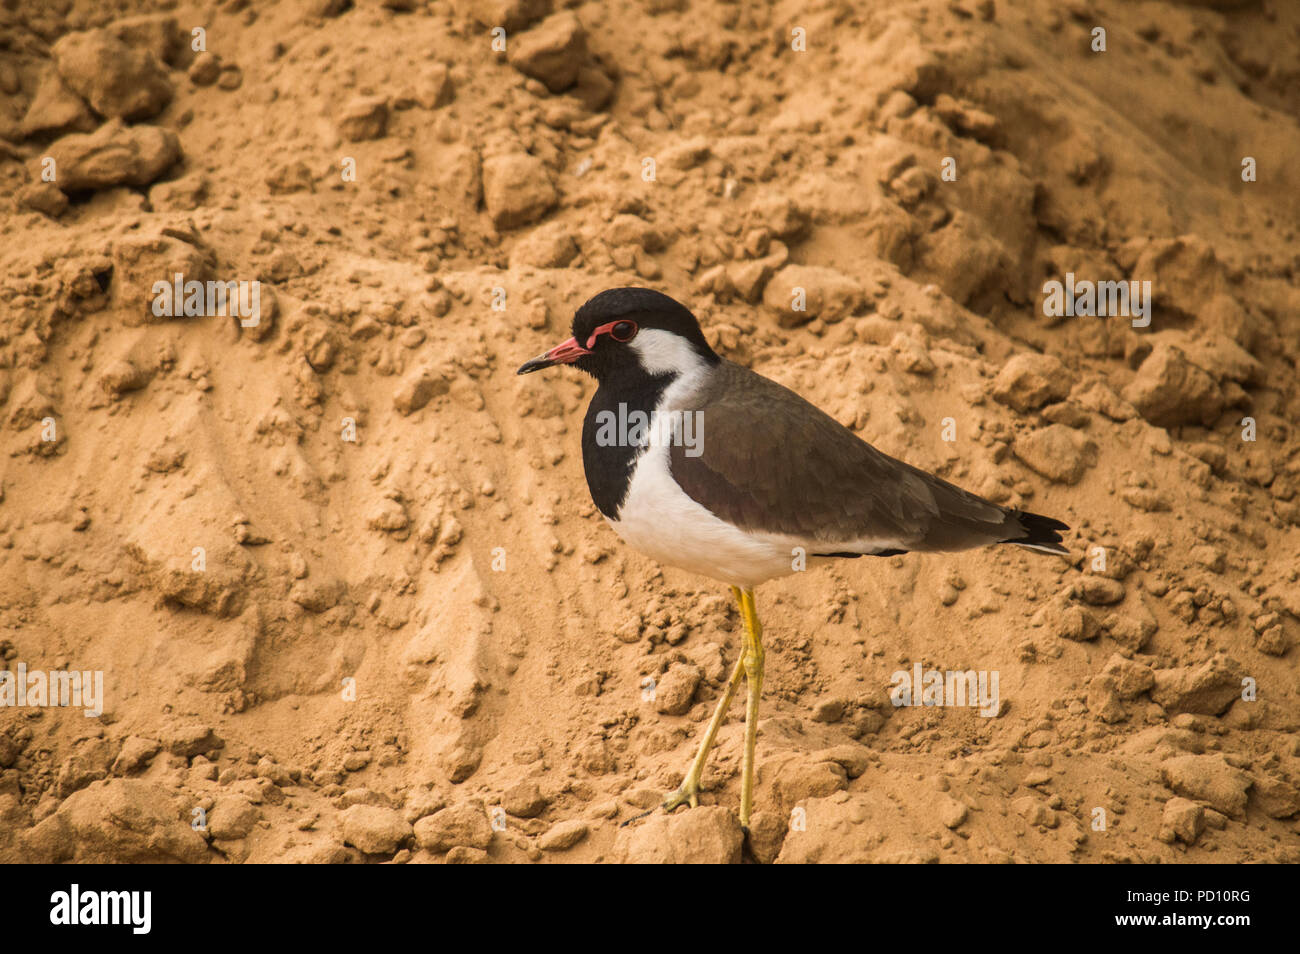 Red-wattled Lapwing (Vanellus indicus) in Central Park, Rambagh, Jaipur, Rajasthan, India - Stock Image